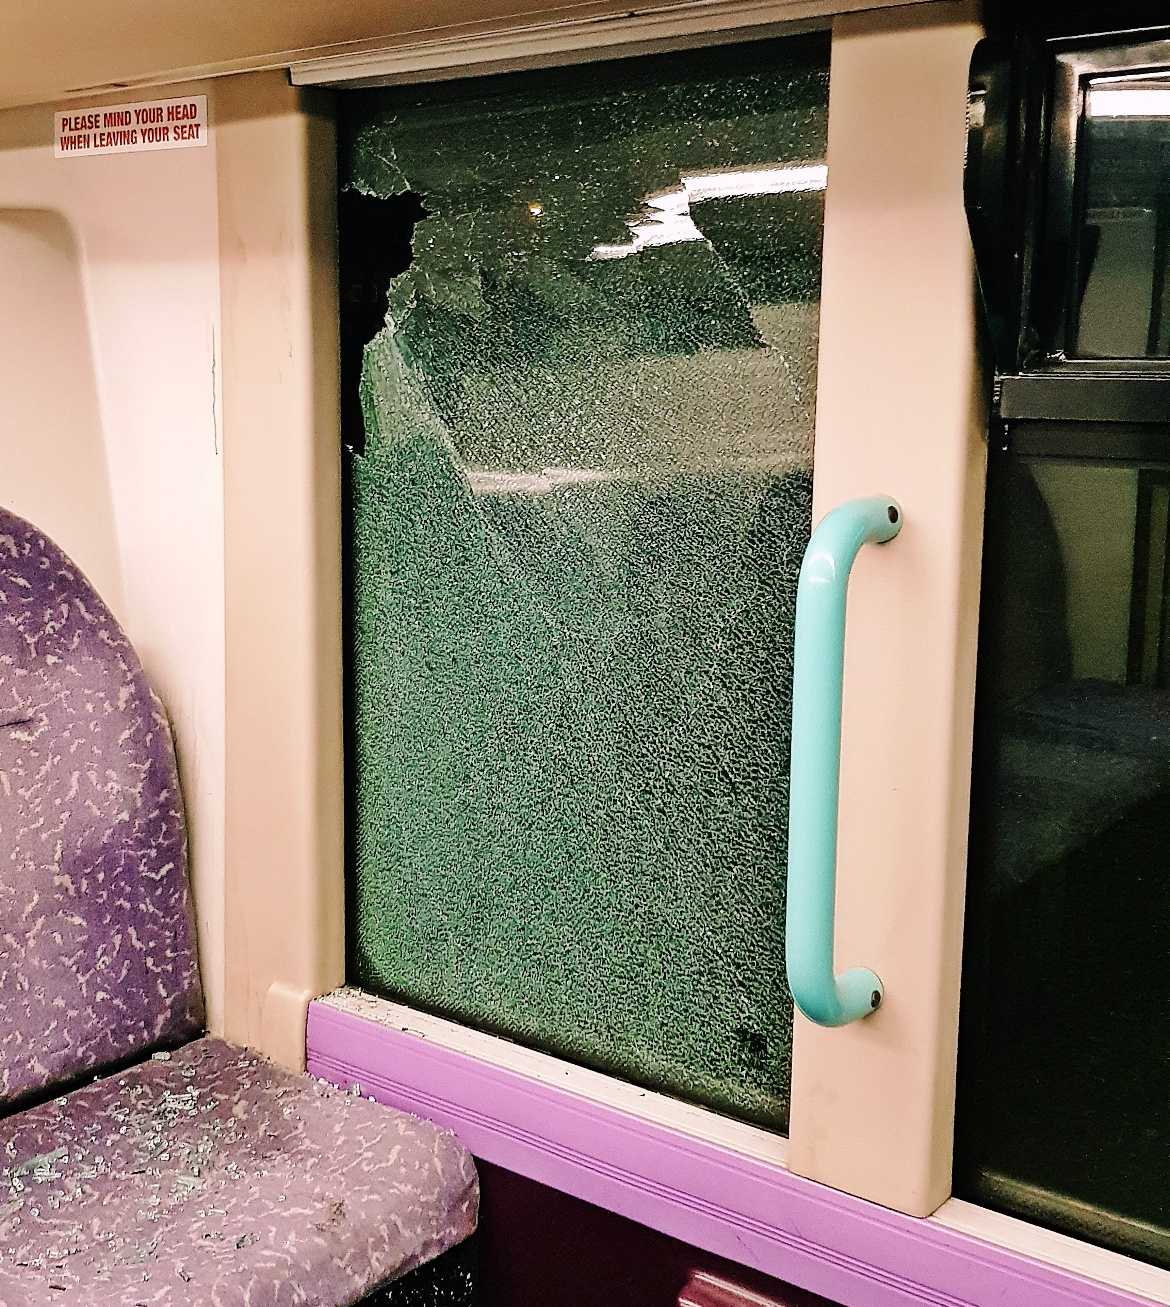 A smashed bus window - February 2018 Monthly Recap by BeckyBecky Blogs